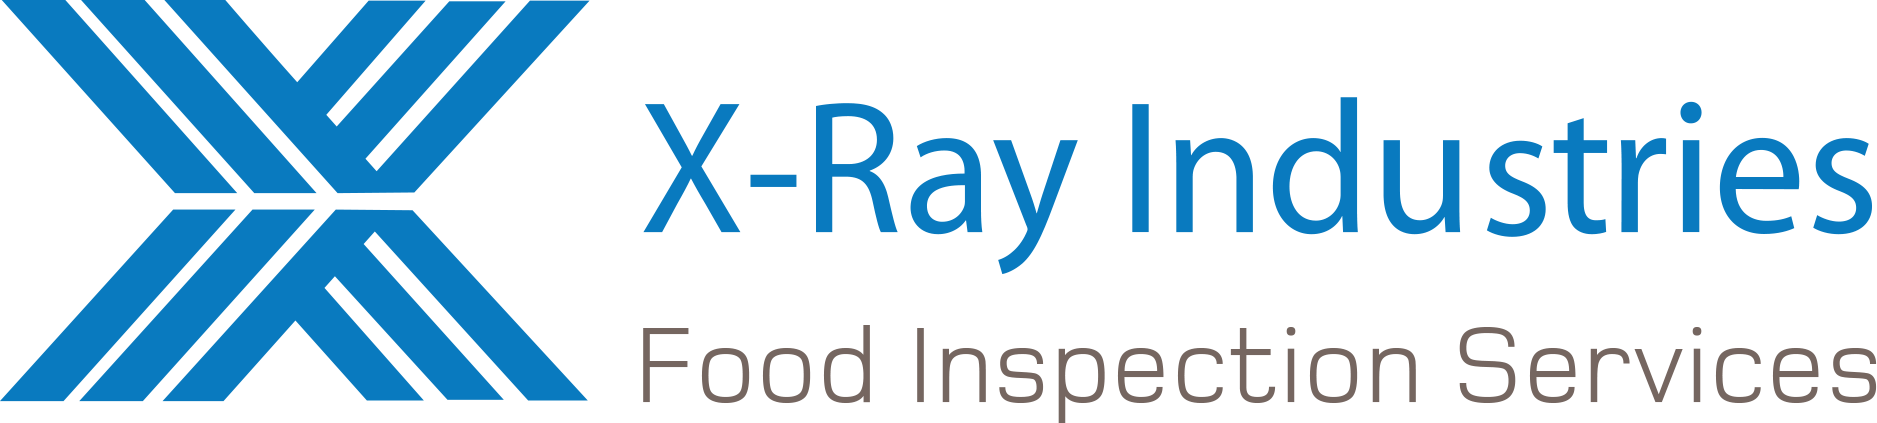 X-Ray Food Technologies